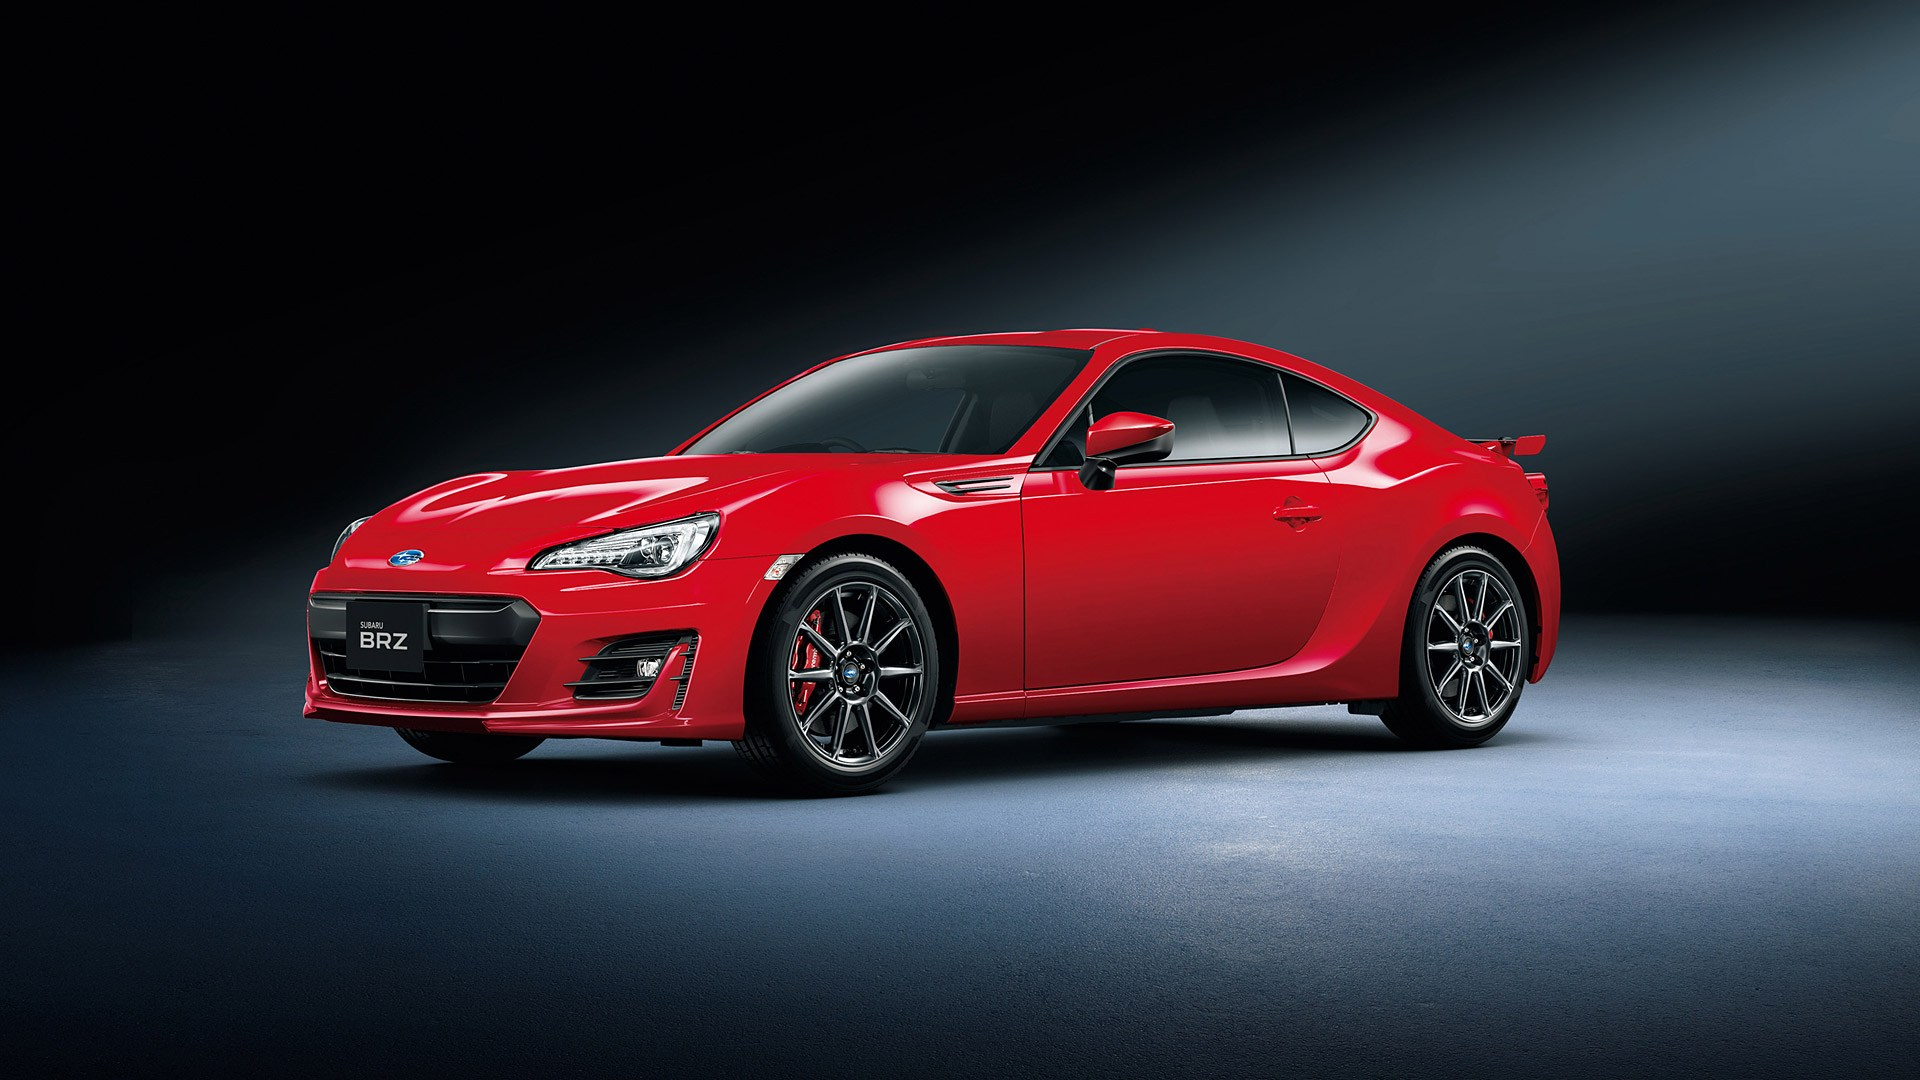 2019 Toyota 86 Gt , HD Wallpaper & Backgrounds